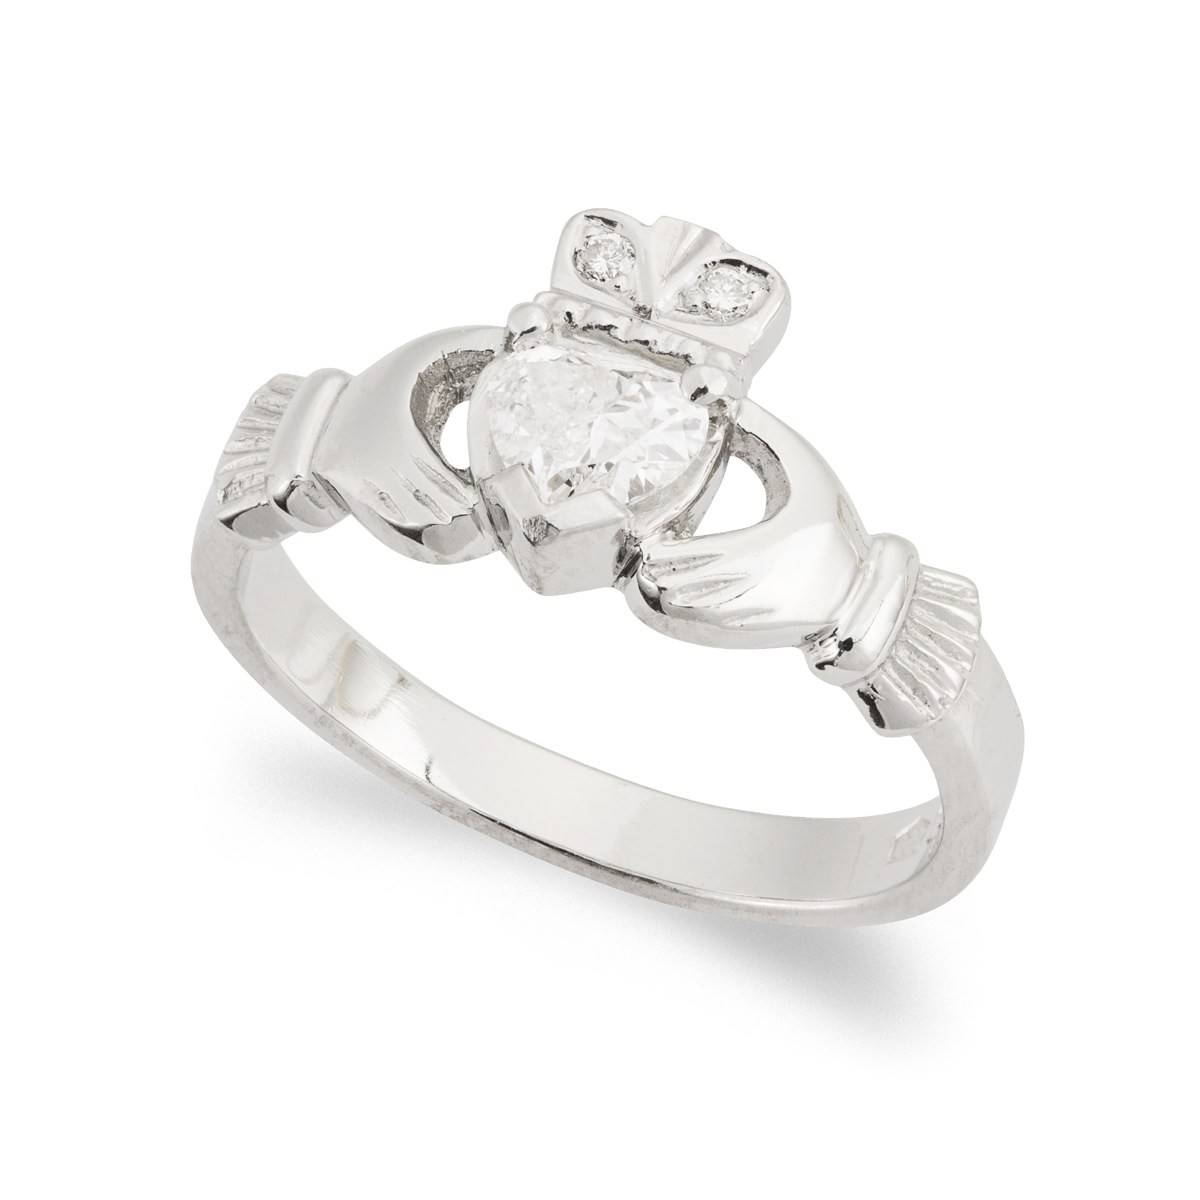 Kylemore Diamond 14 Kt Claddagh Ring | Claddagh Jewellers Inside Irish Engagement Rings (View 12 of 15)